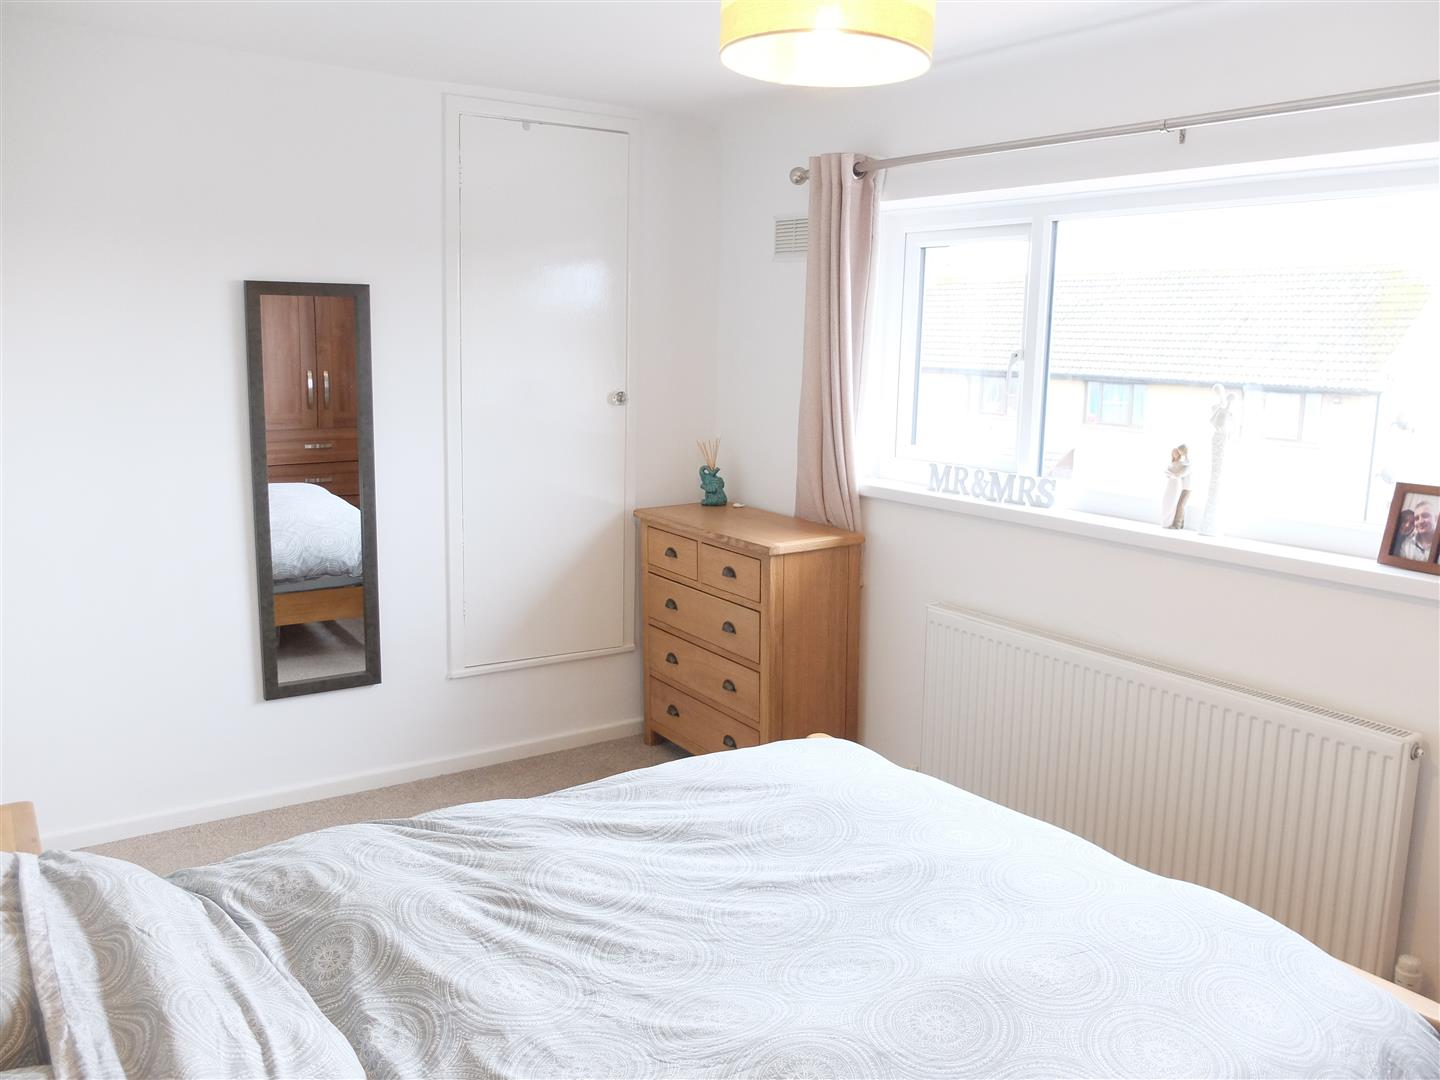 3 Bedrooms House - Terraced For Sale 24 Bannisdale Way Carlisle 110,000